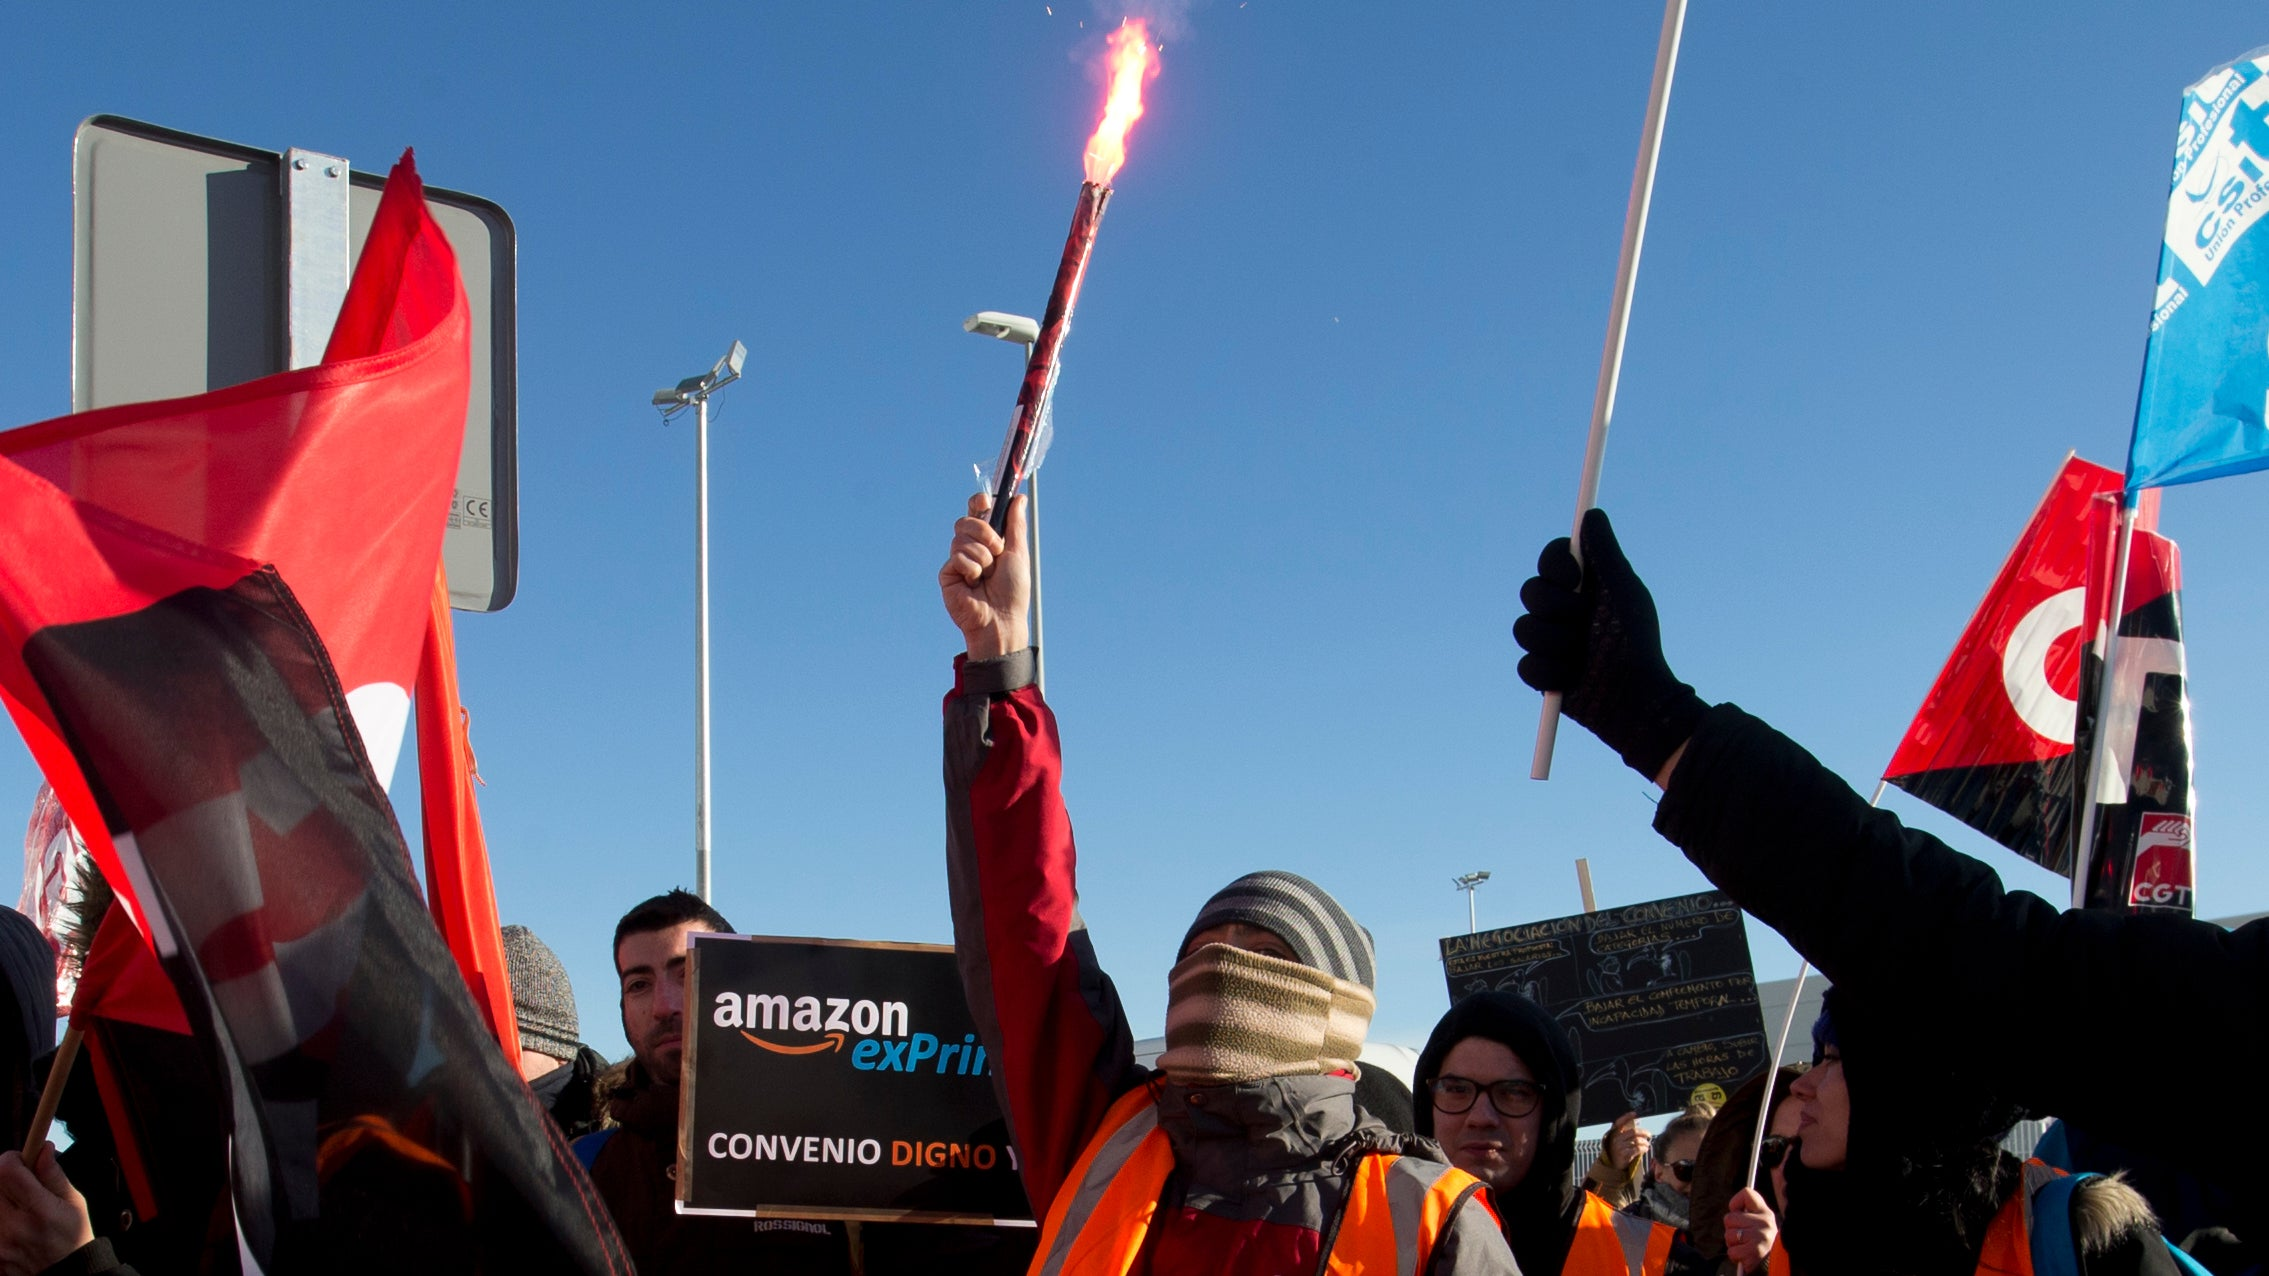 Amazon Warehouse Strike In Spain Reportedly Results In Police Clashes, Arrests